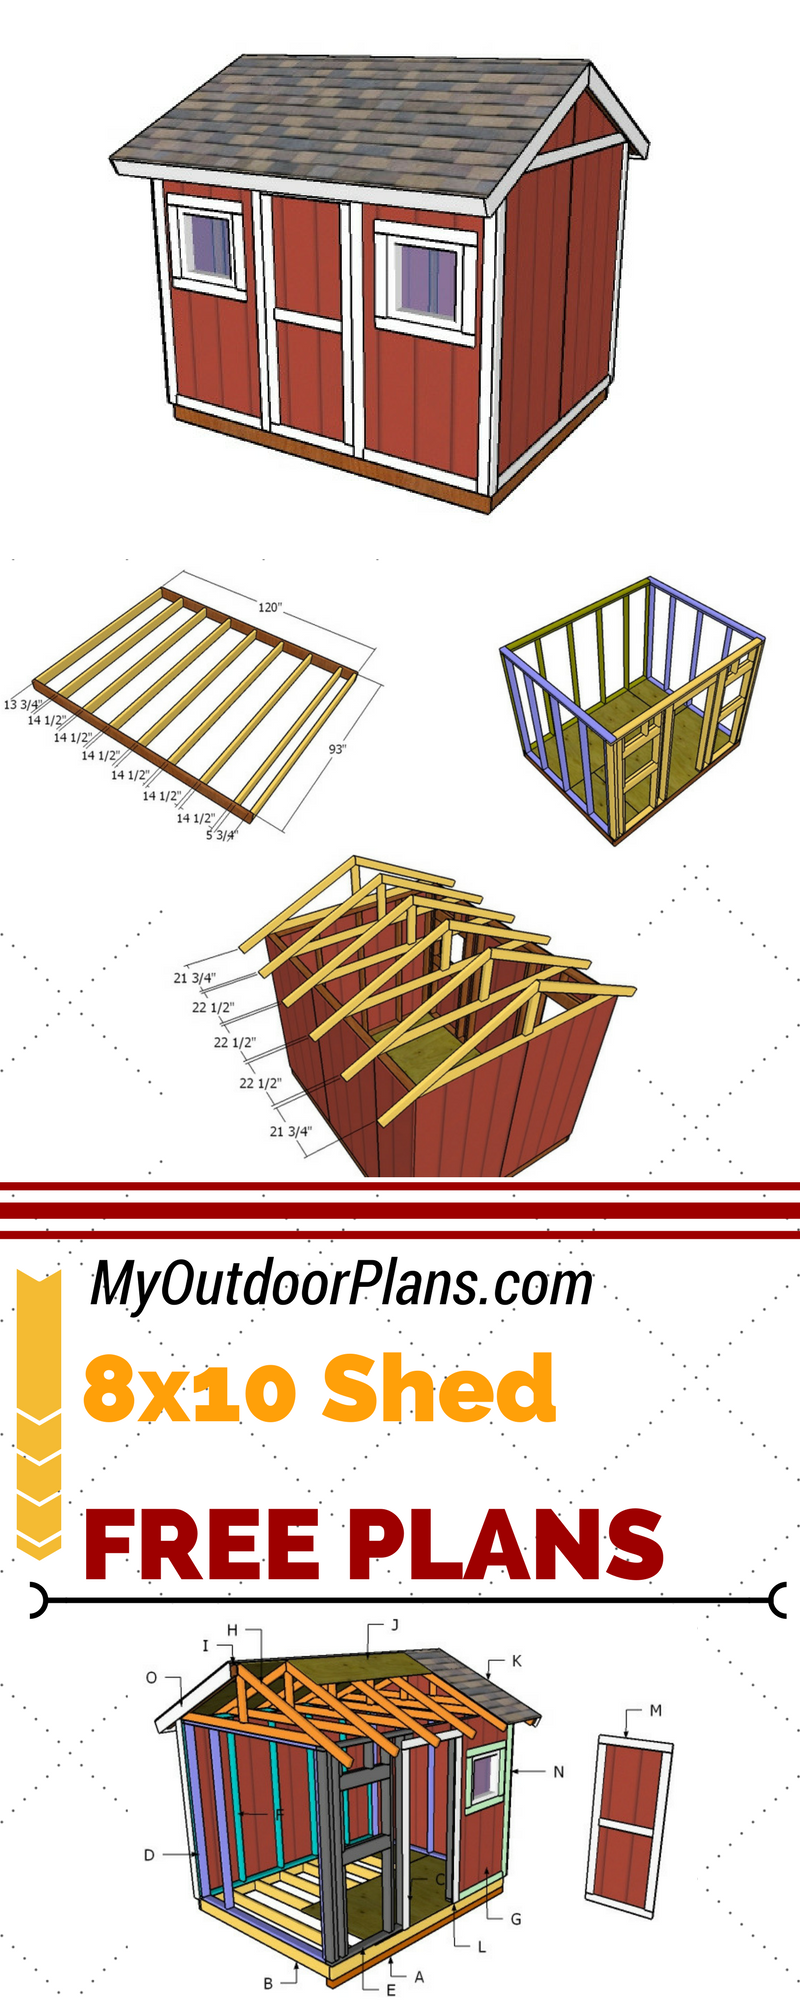 Check Out Free 8x10 Shed Plans For You To Build Storage Space In Your Garden Follow My Step By Step Free 8x10 8x10 Shed Diy Shed Plans Diy Storage Shed Plans